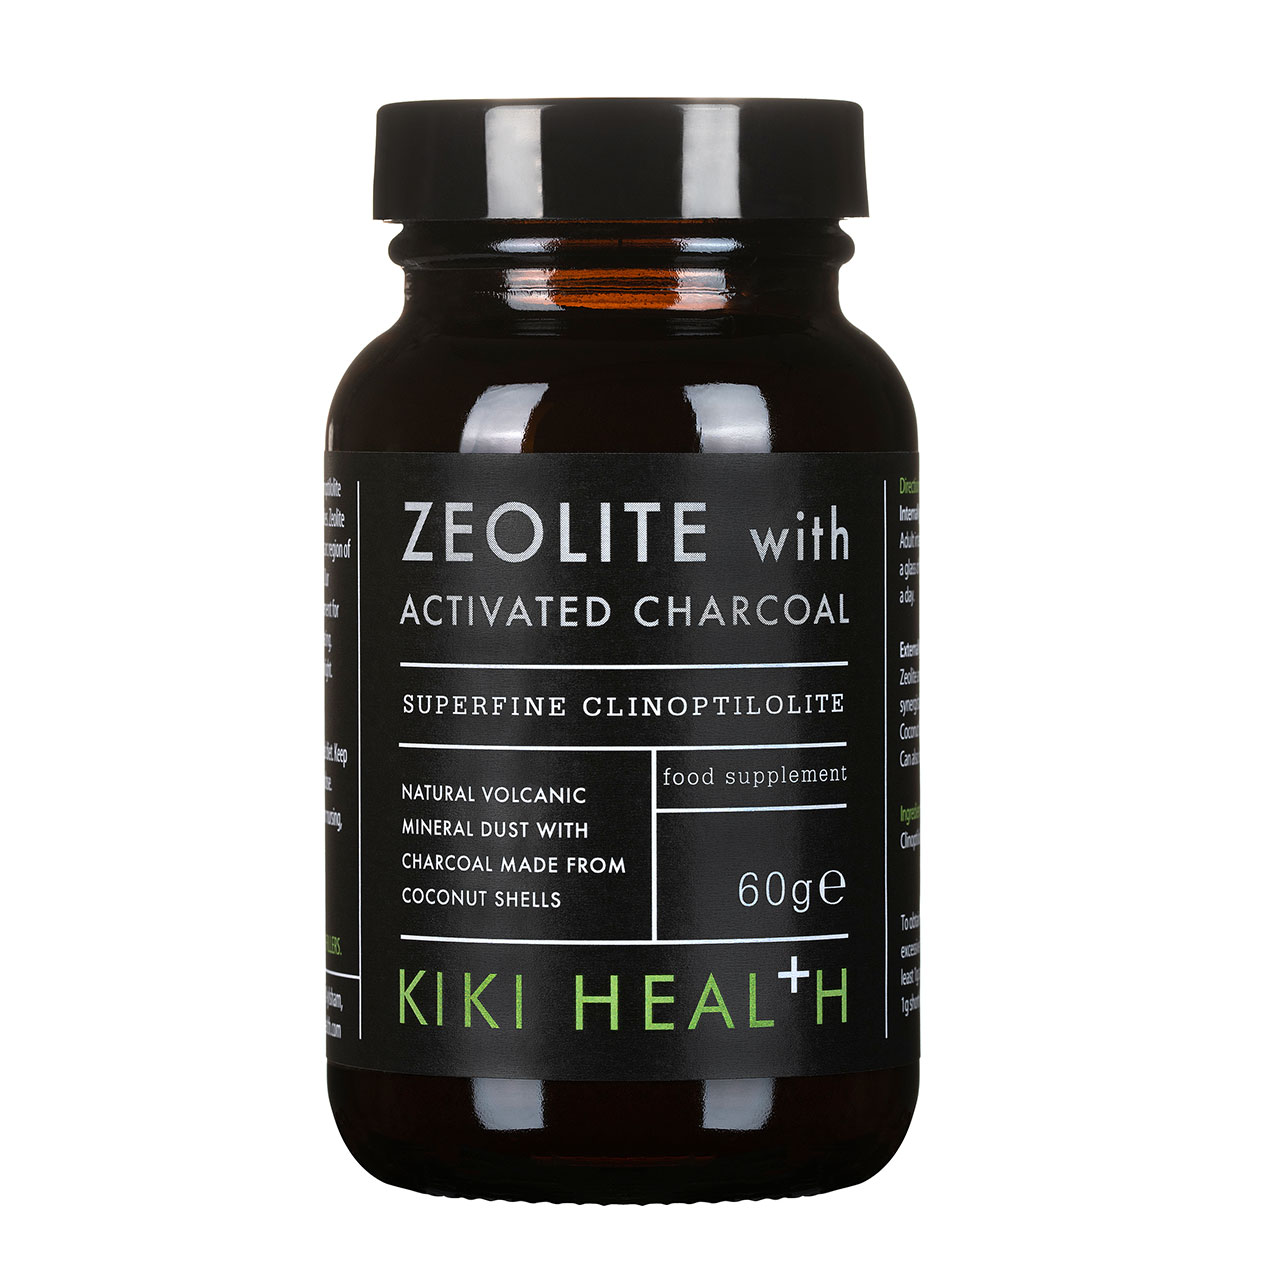 Zeolite with Activated Charcoal 60g